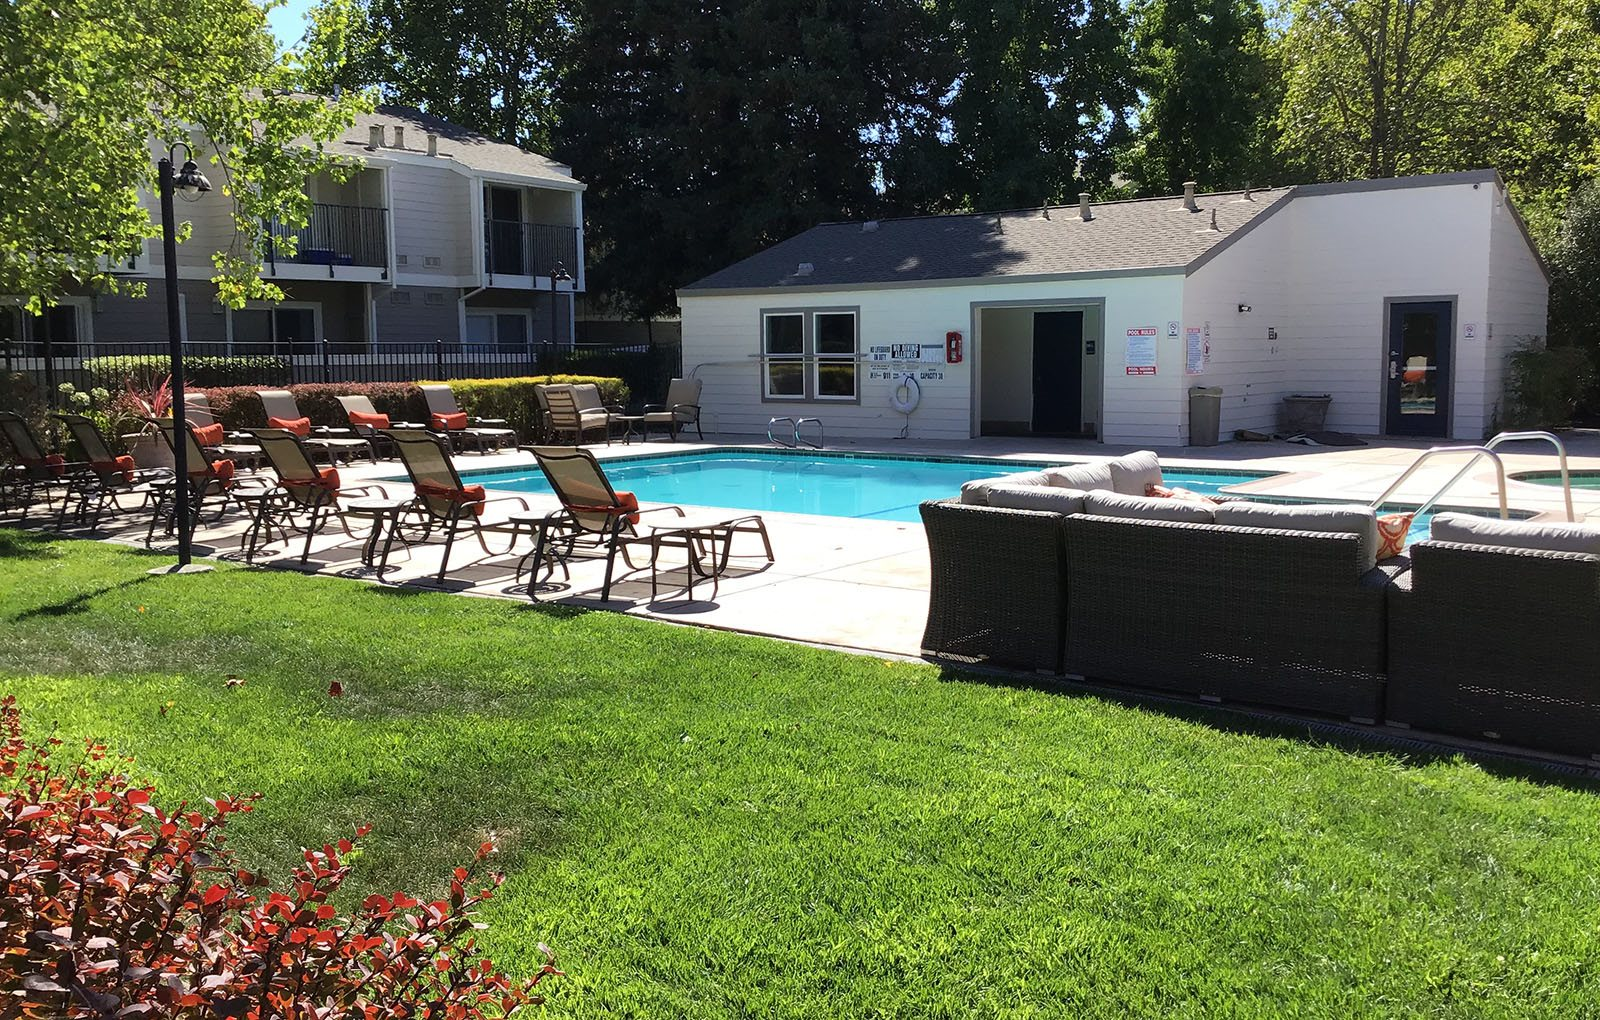 Vineyard Gardens Pool with lounge chairs and couch